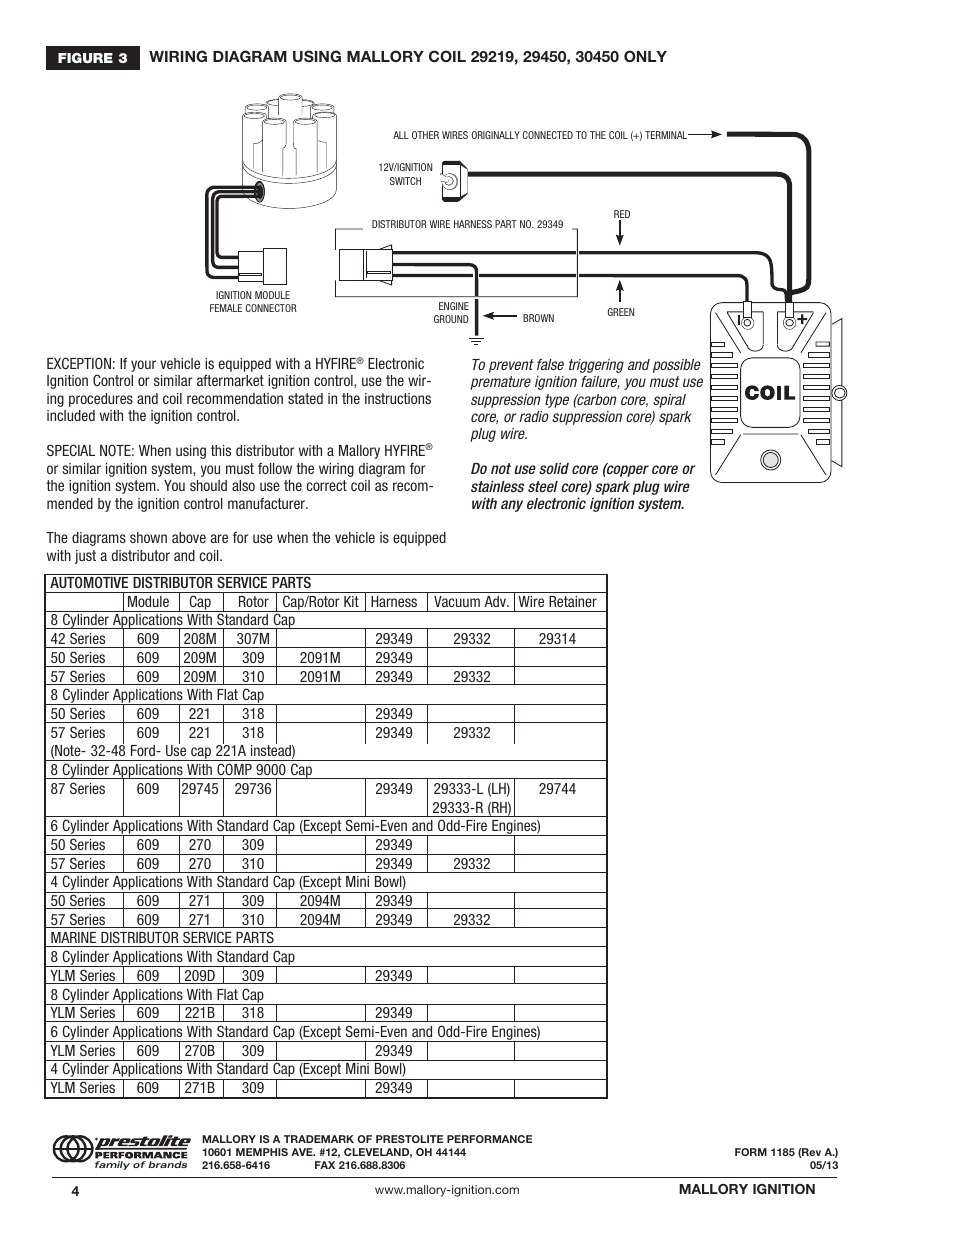 Unilite Distributor Wiring Diagram 34 Images Mallory 685 Diagrams 547353 Ignition Magnetic Breakerless 609 Page4resize665